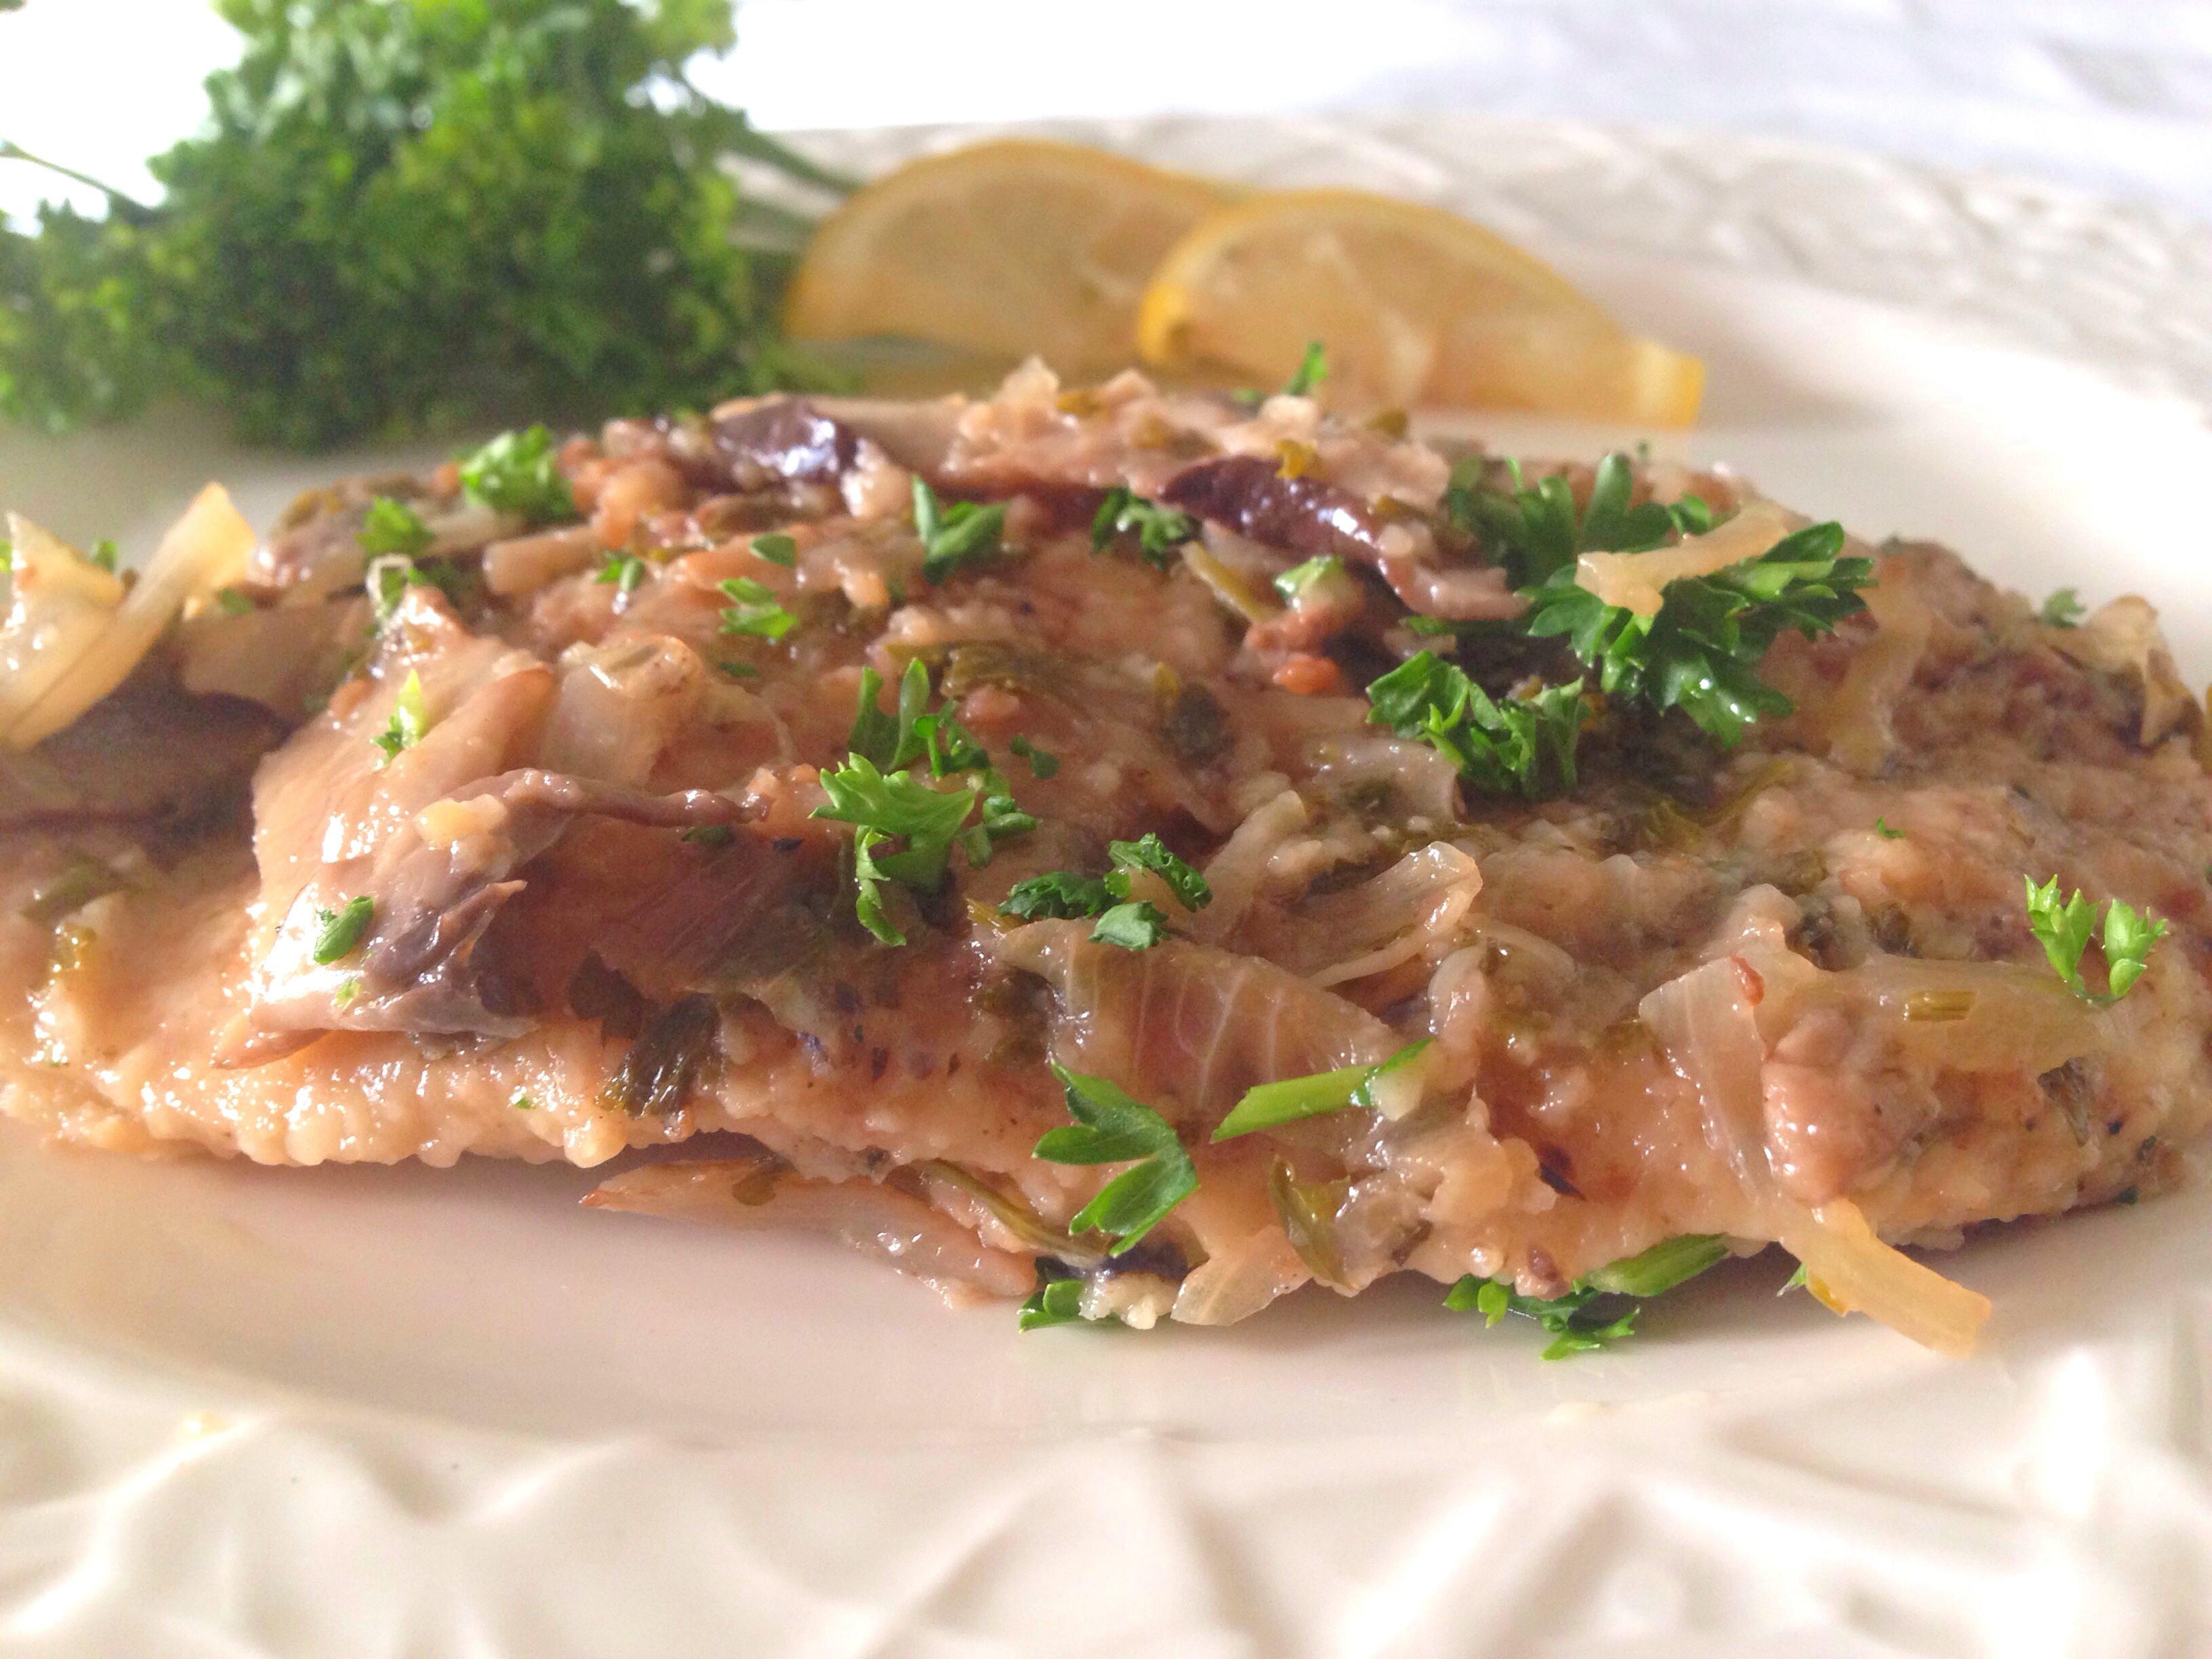 Chicken with mushrooms and lemon plate